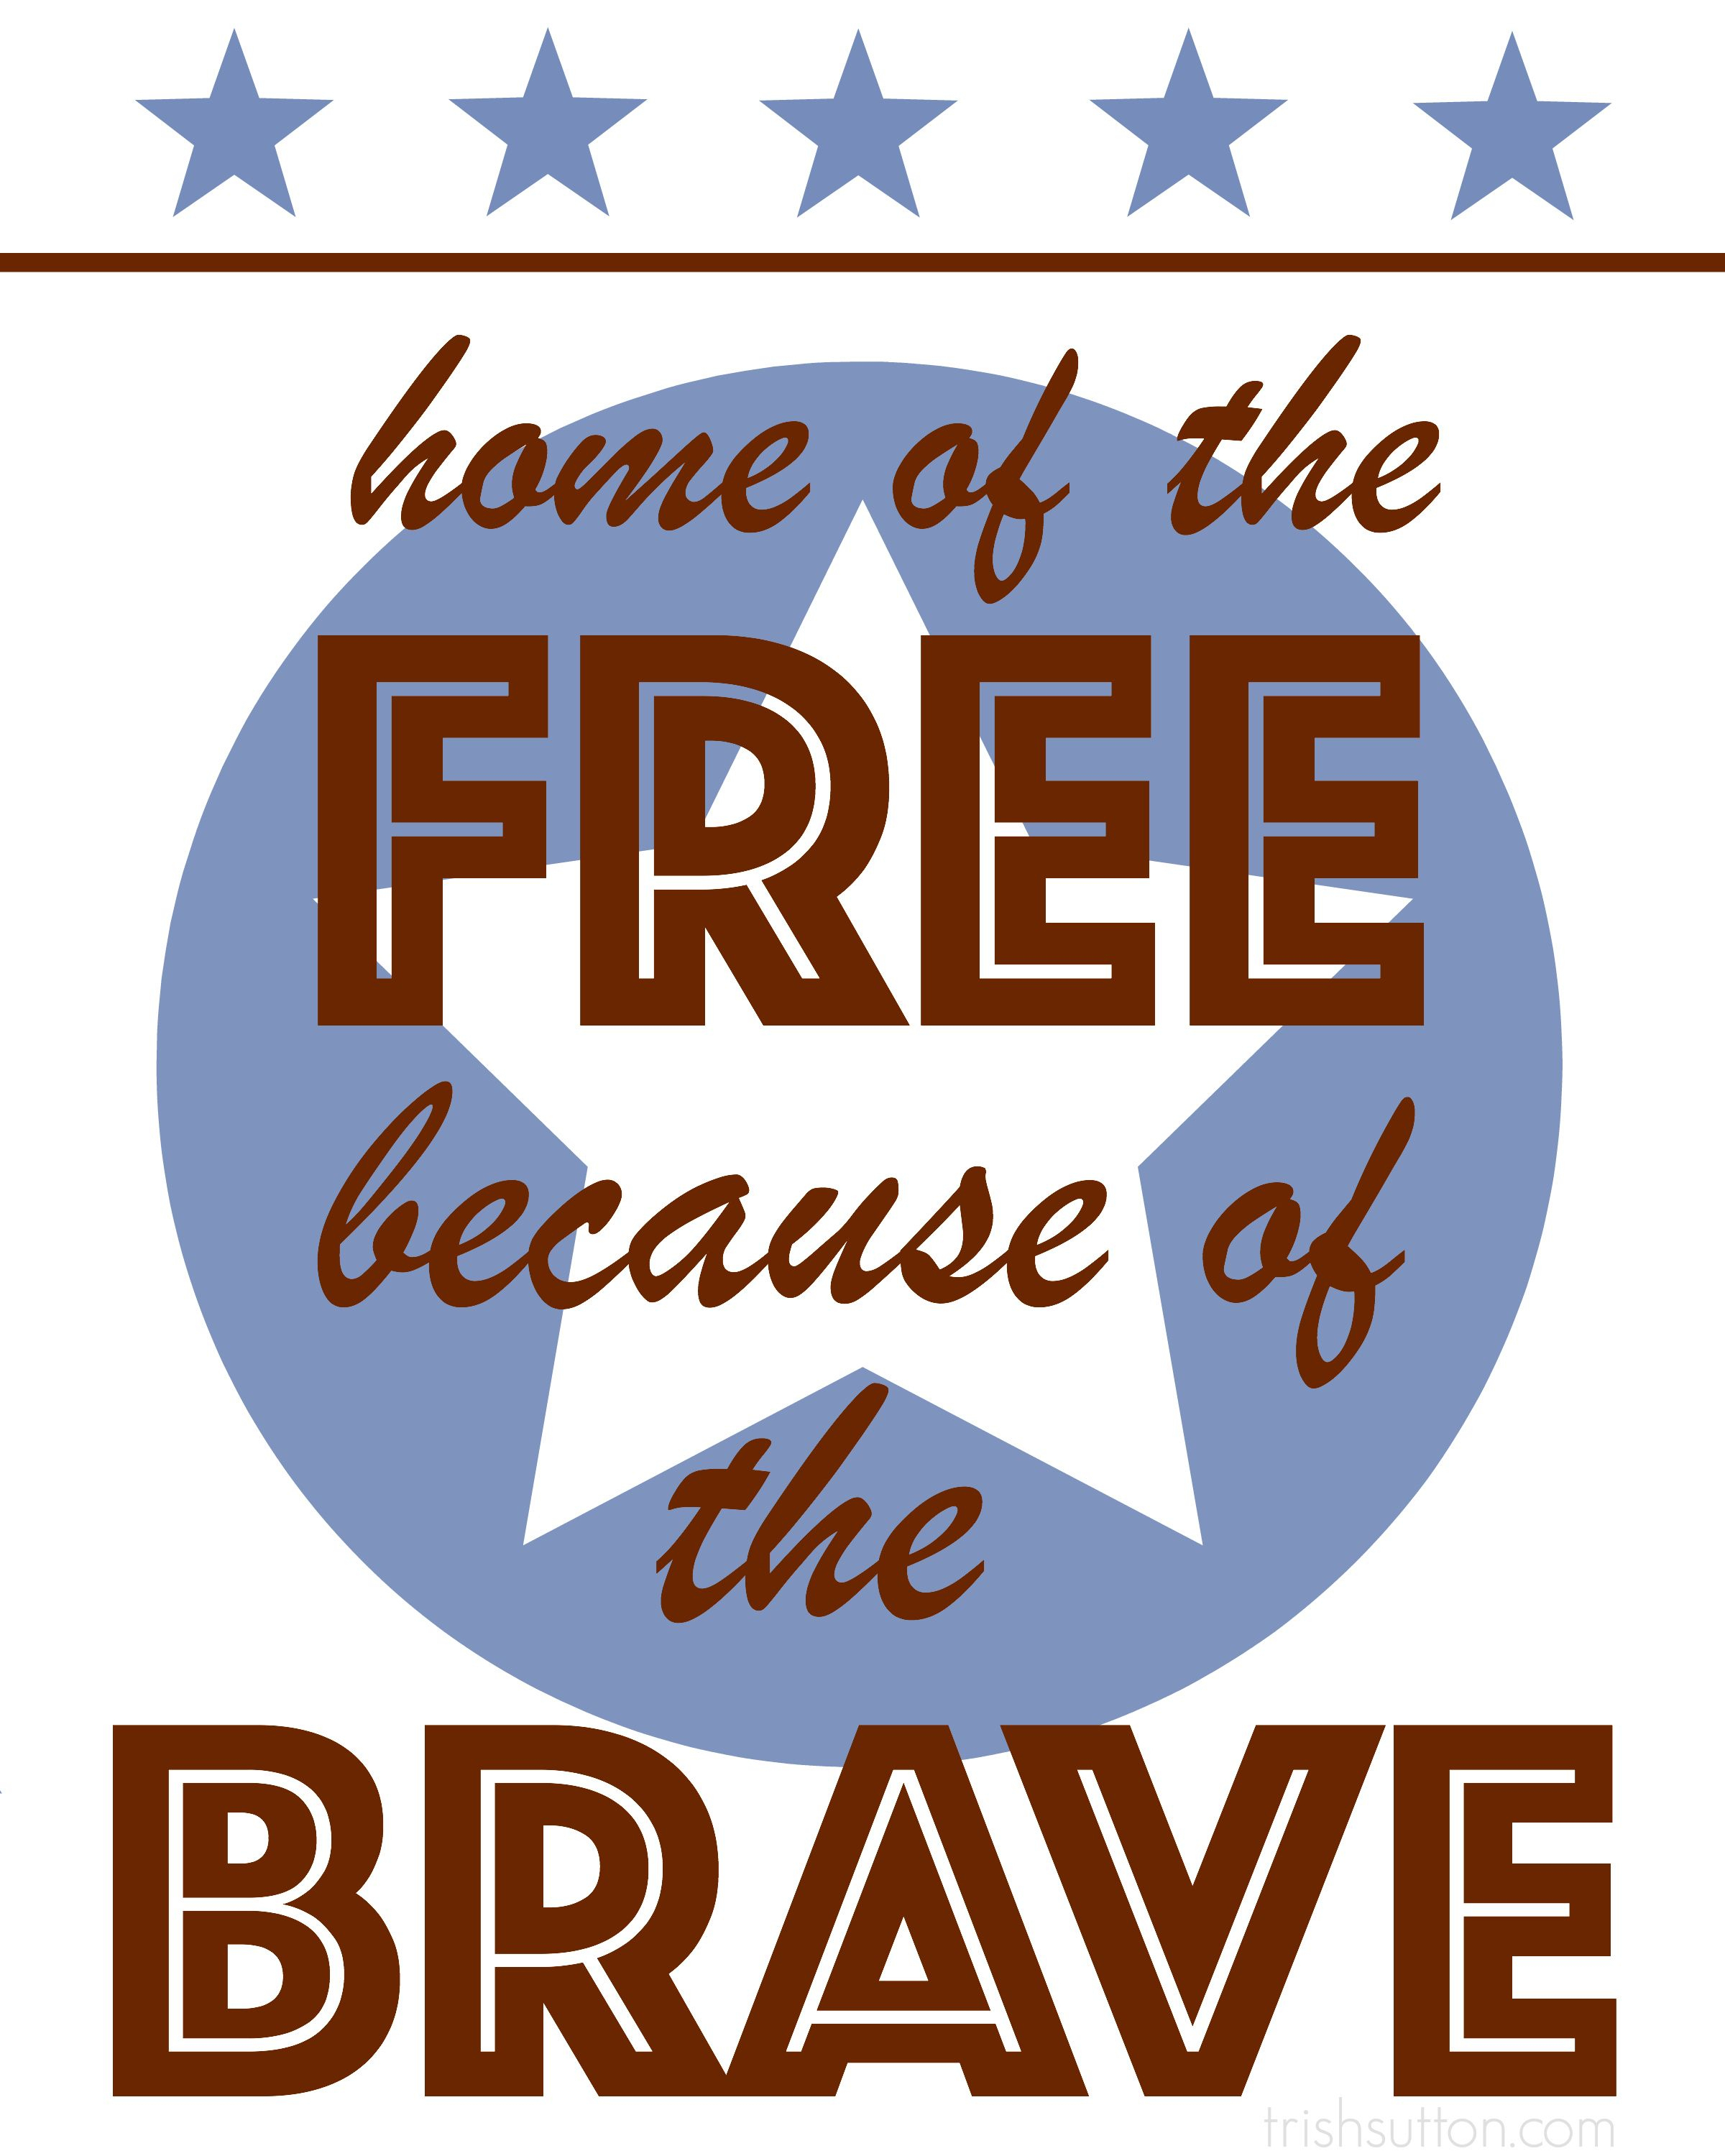 Free Printable; Home Of The Free Because Of The Brave | Trishsutton - Home Of The Free Because Of The Brave Printable